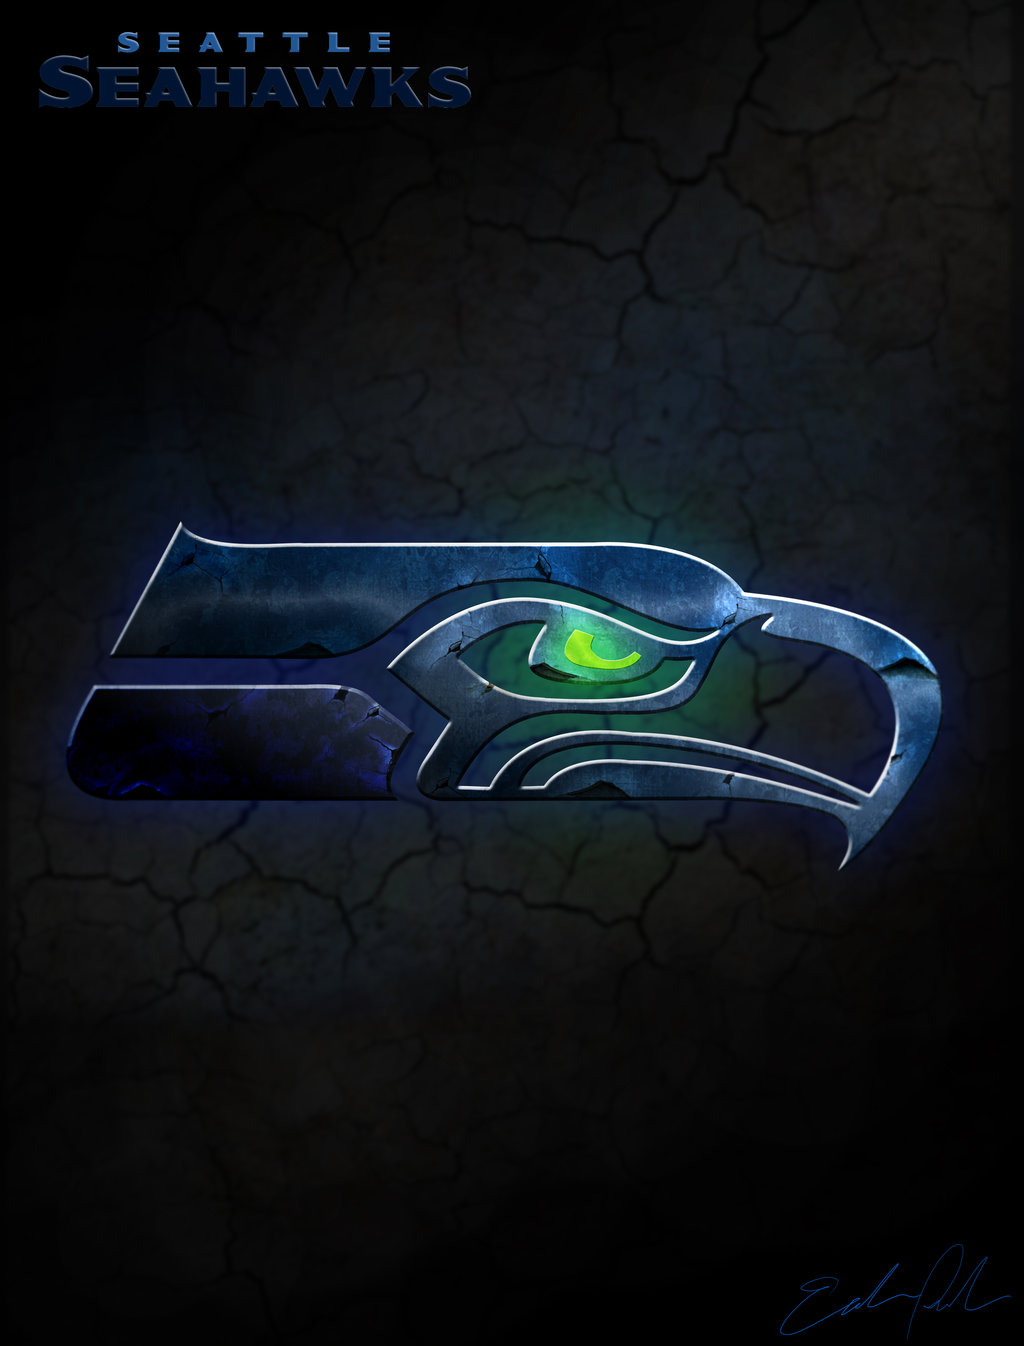 Seahawks Screensavers and Wallpaper on